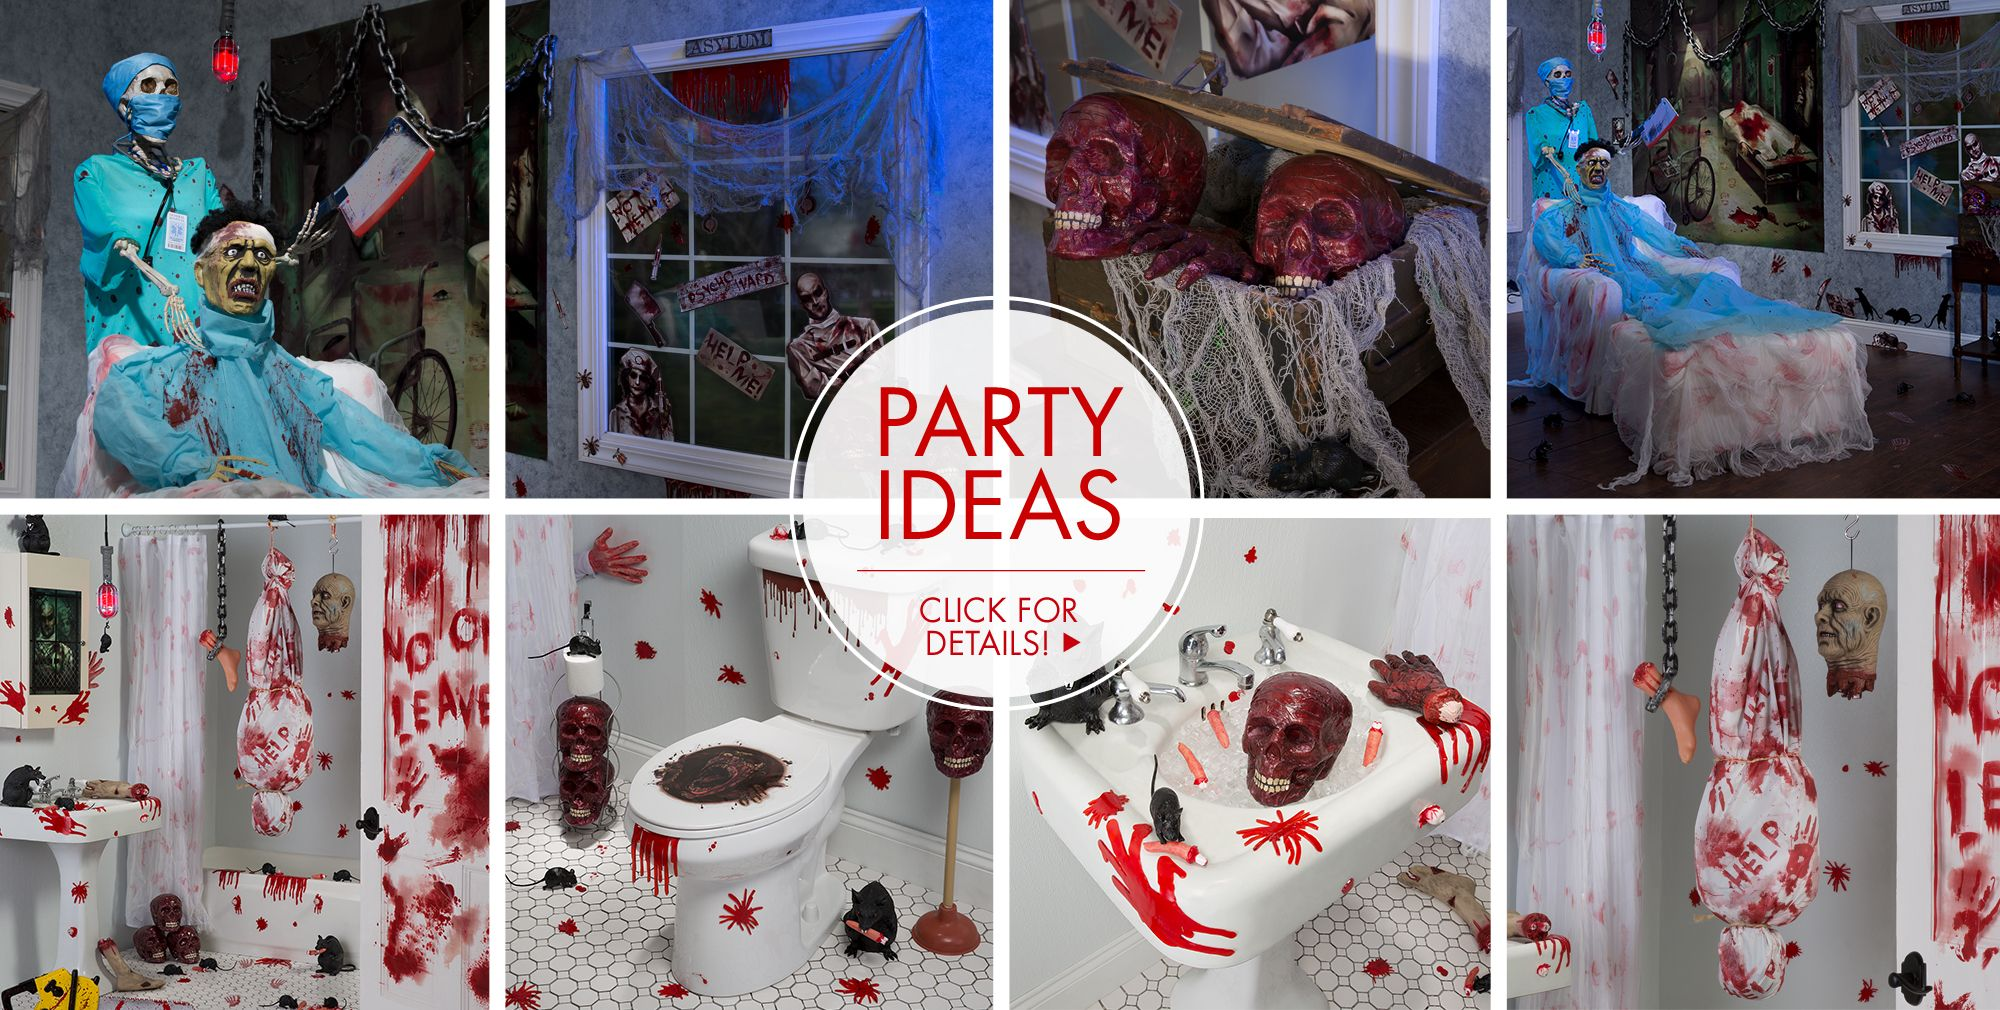 asylum halloween decorations party ideas - Halloween Theme Party Ideas